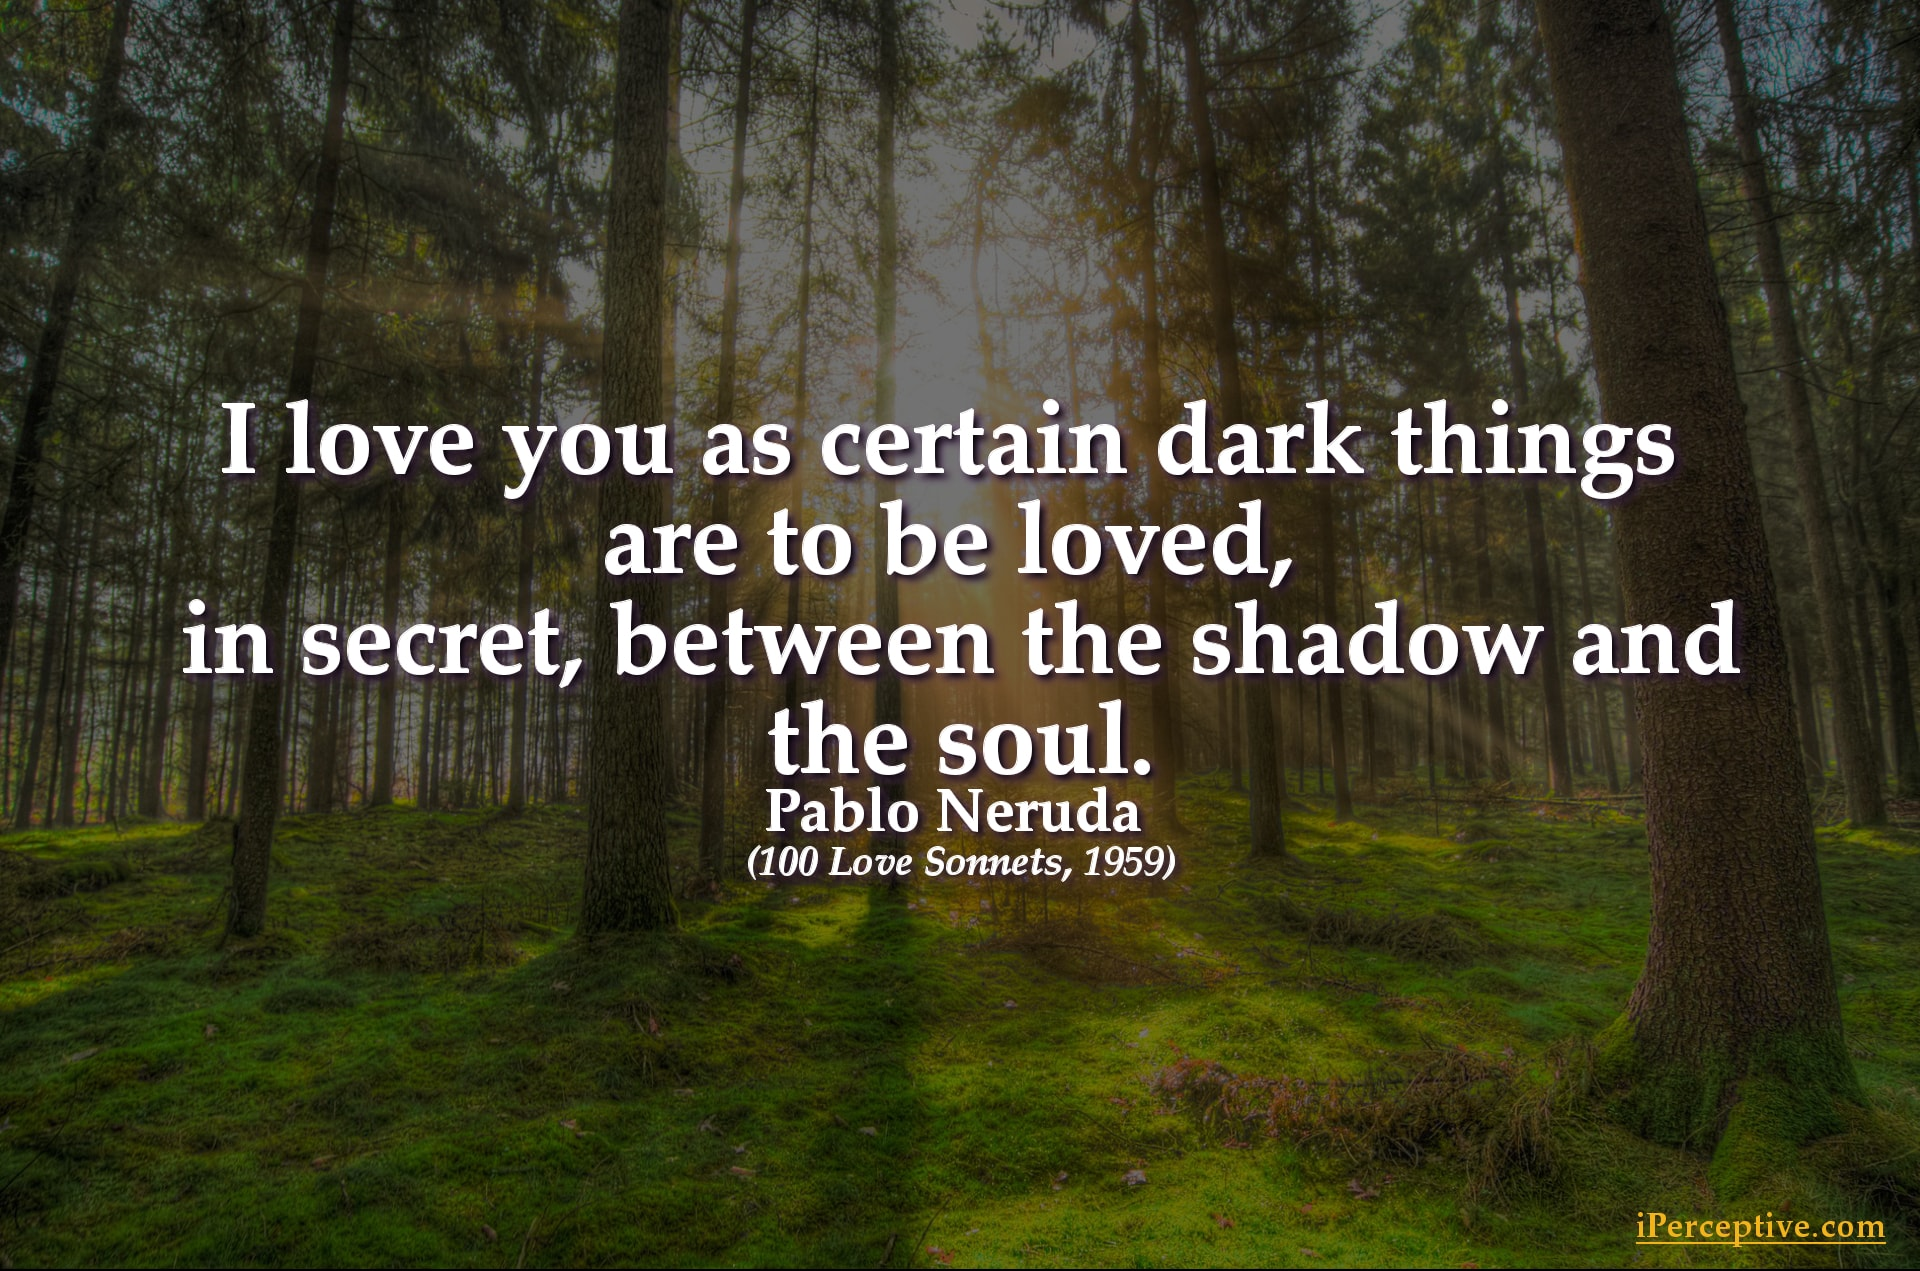 Spiritual Quotes About Love 25 Spiritual Quotes On Love The Mystical Experience